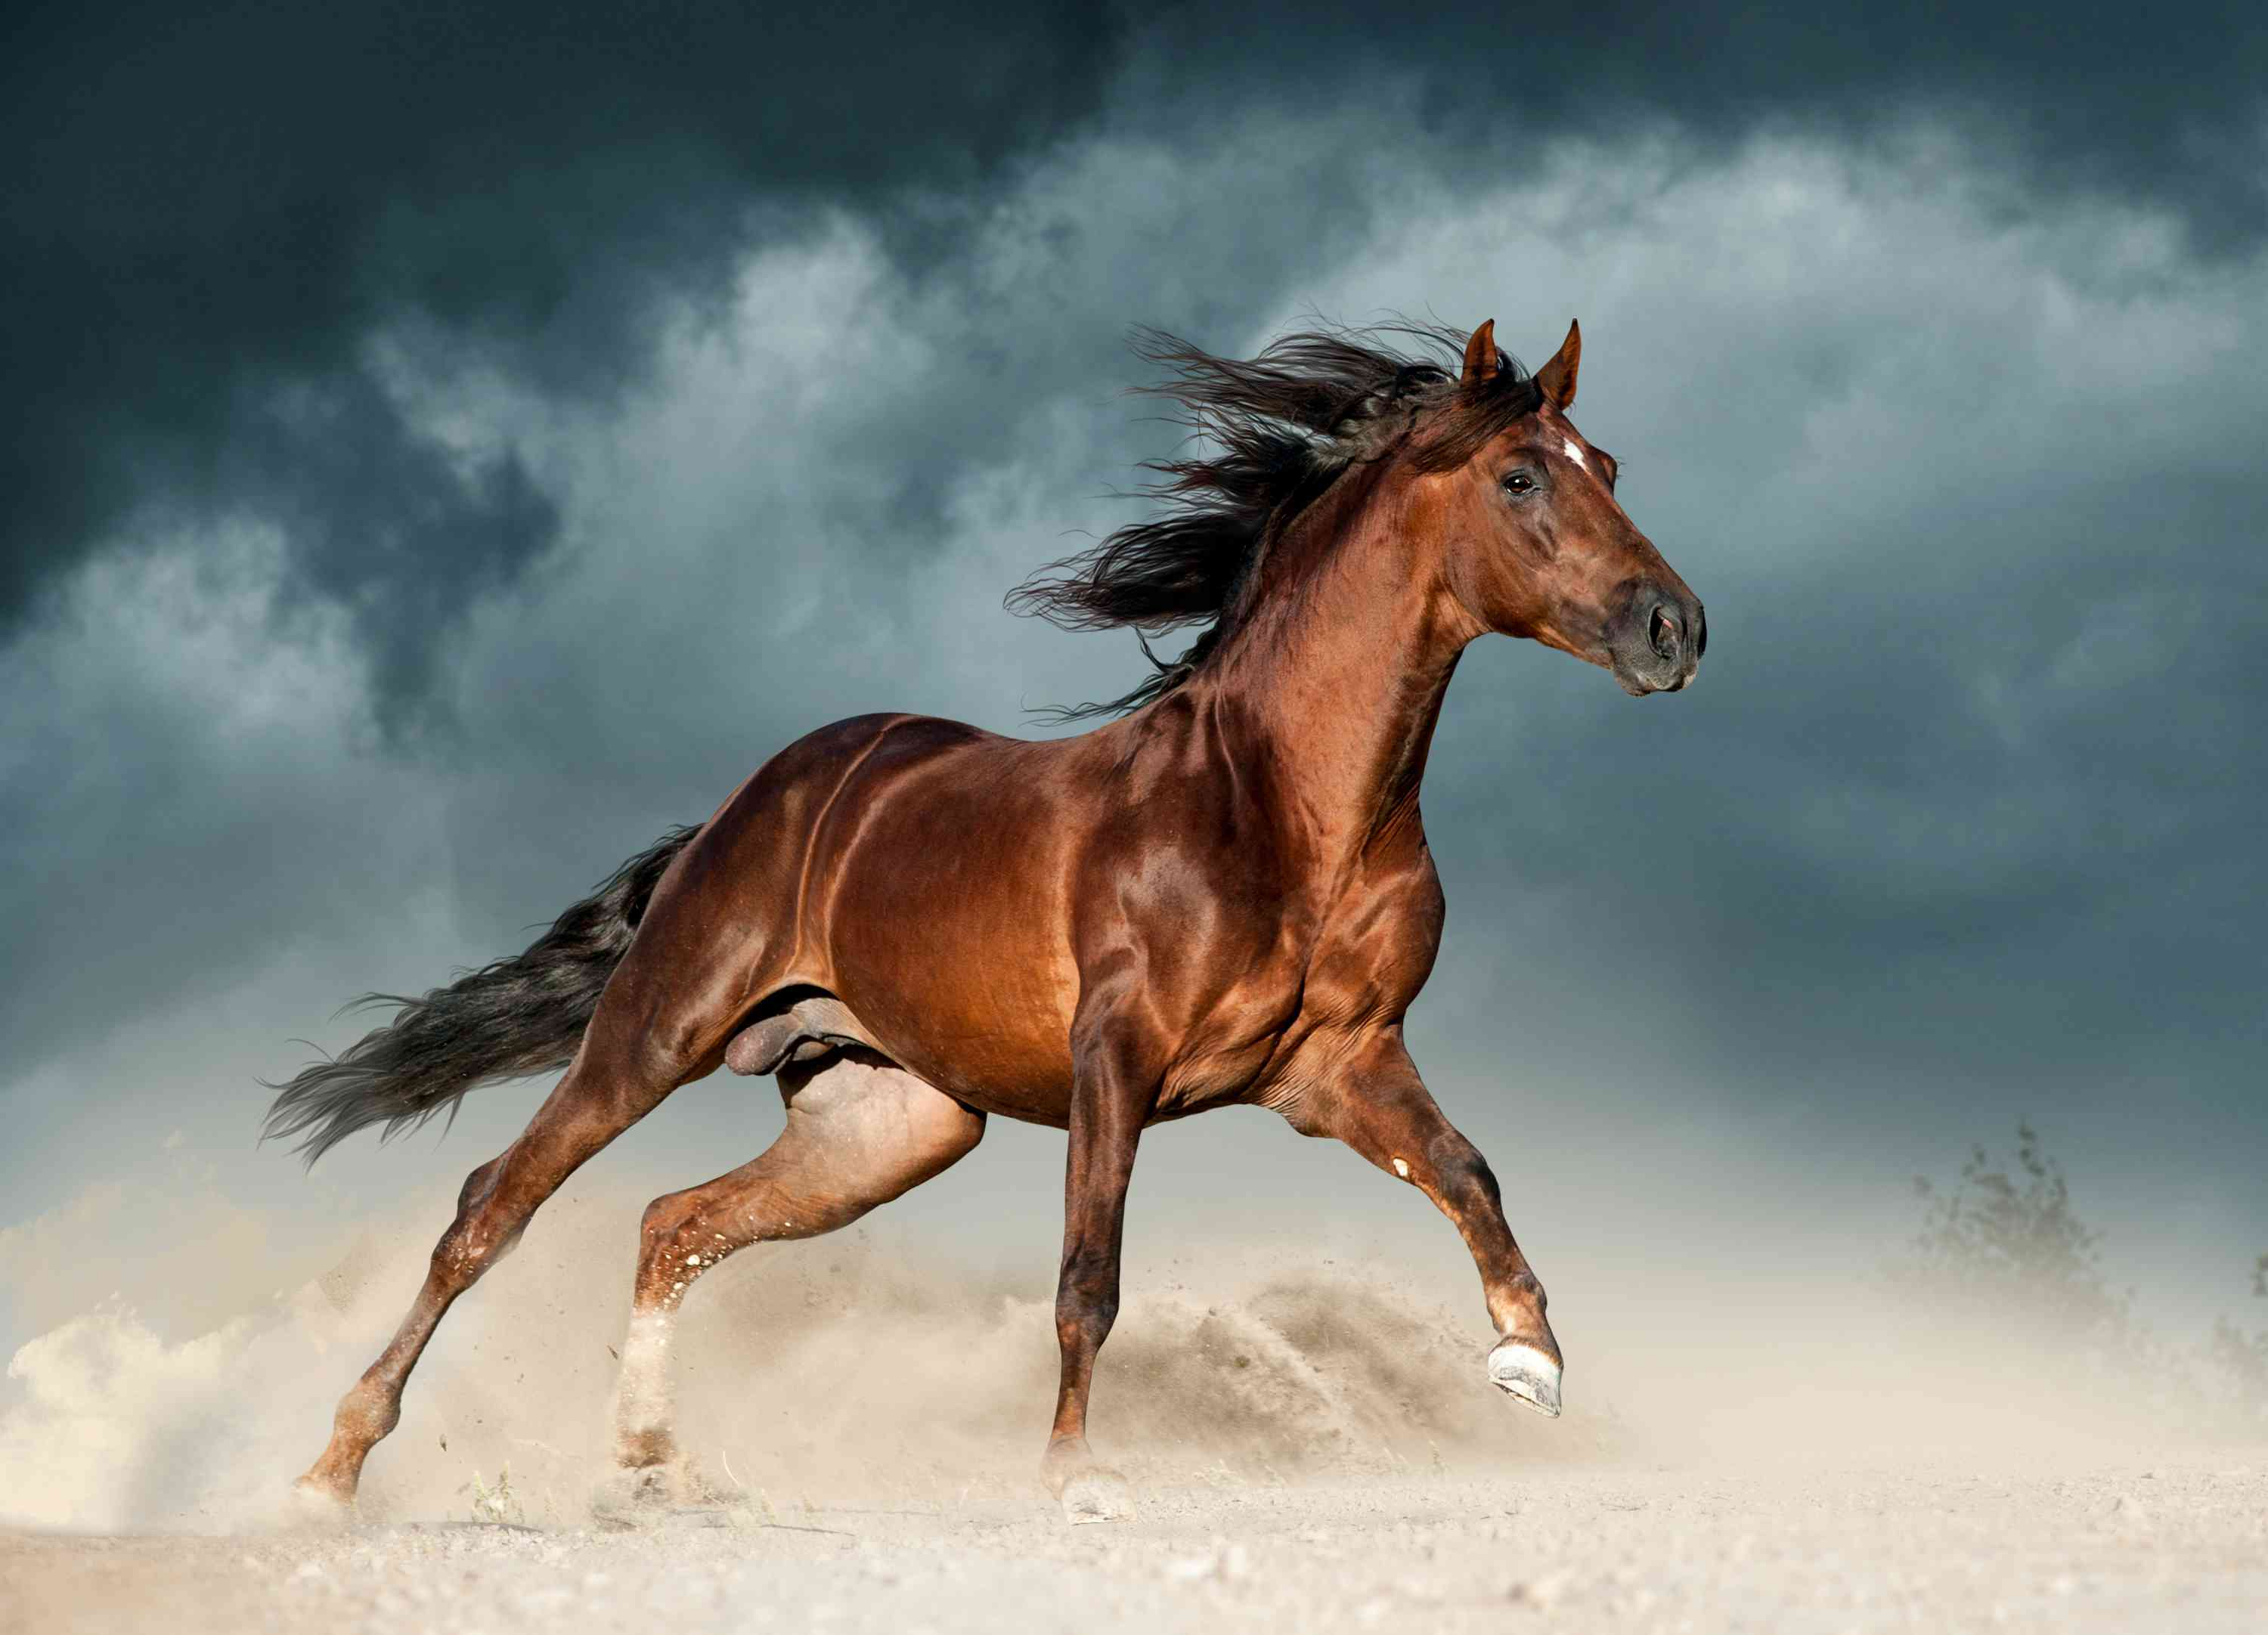 Chestnut Andalusian cantering in a desert setting